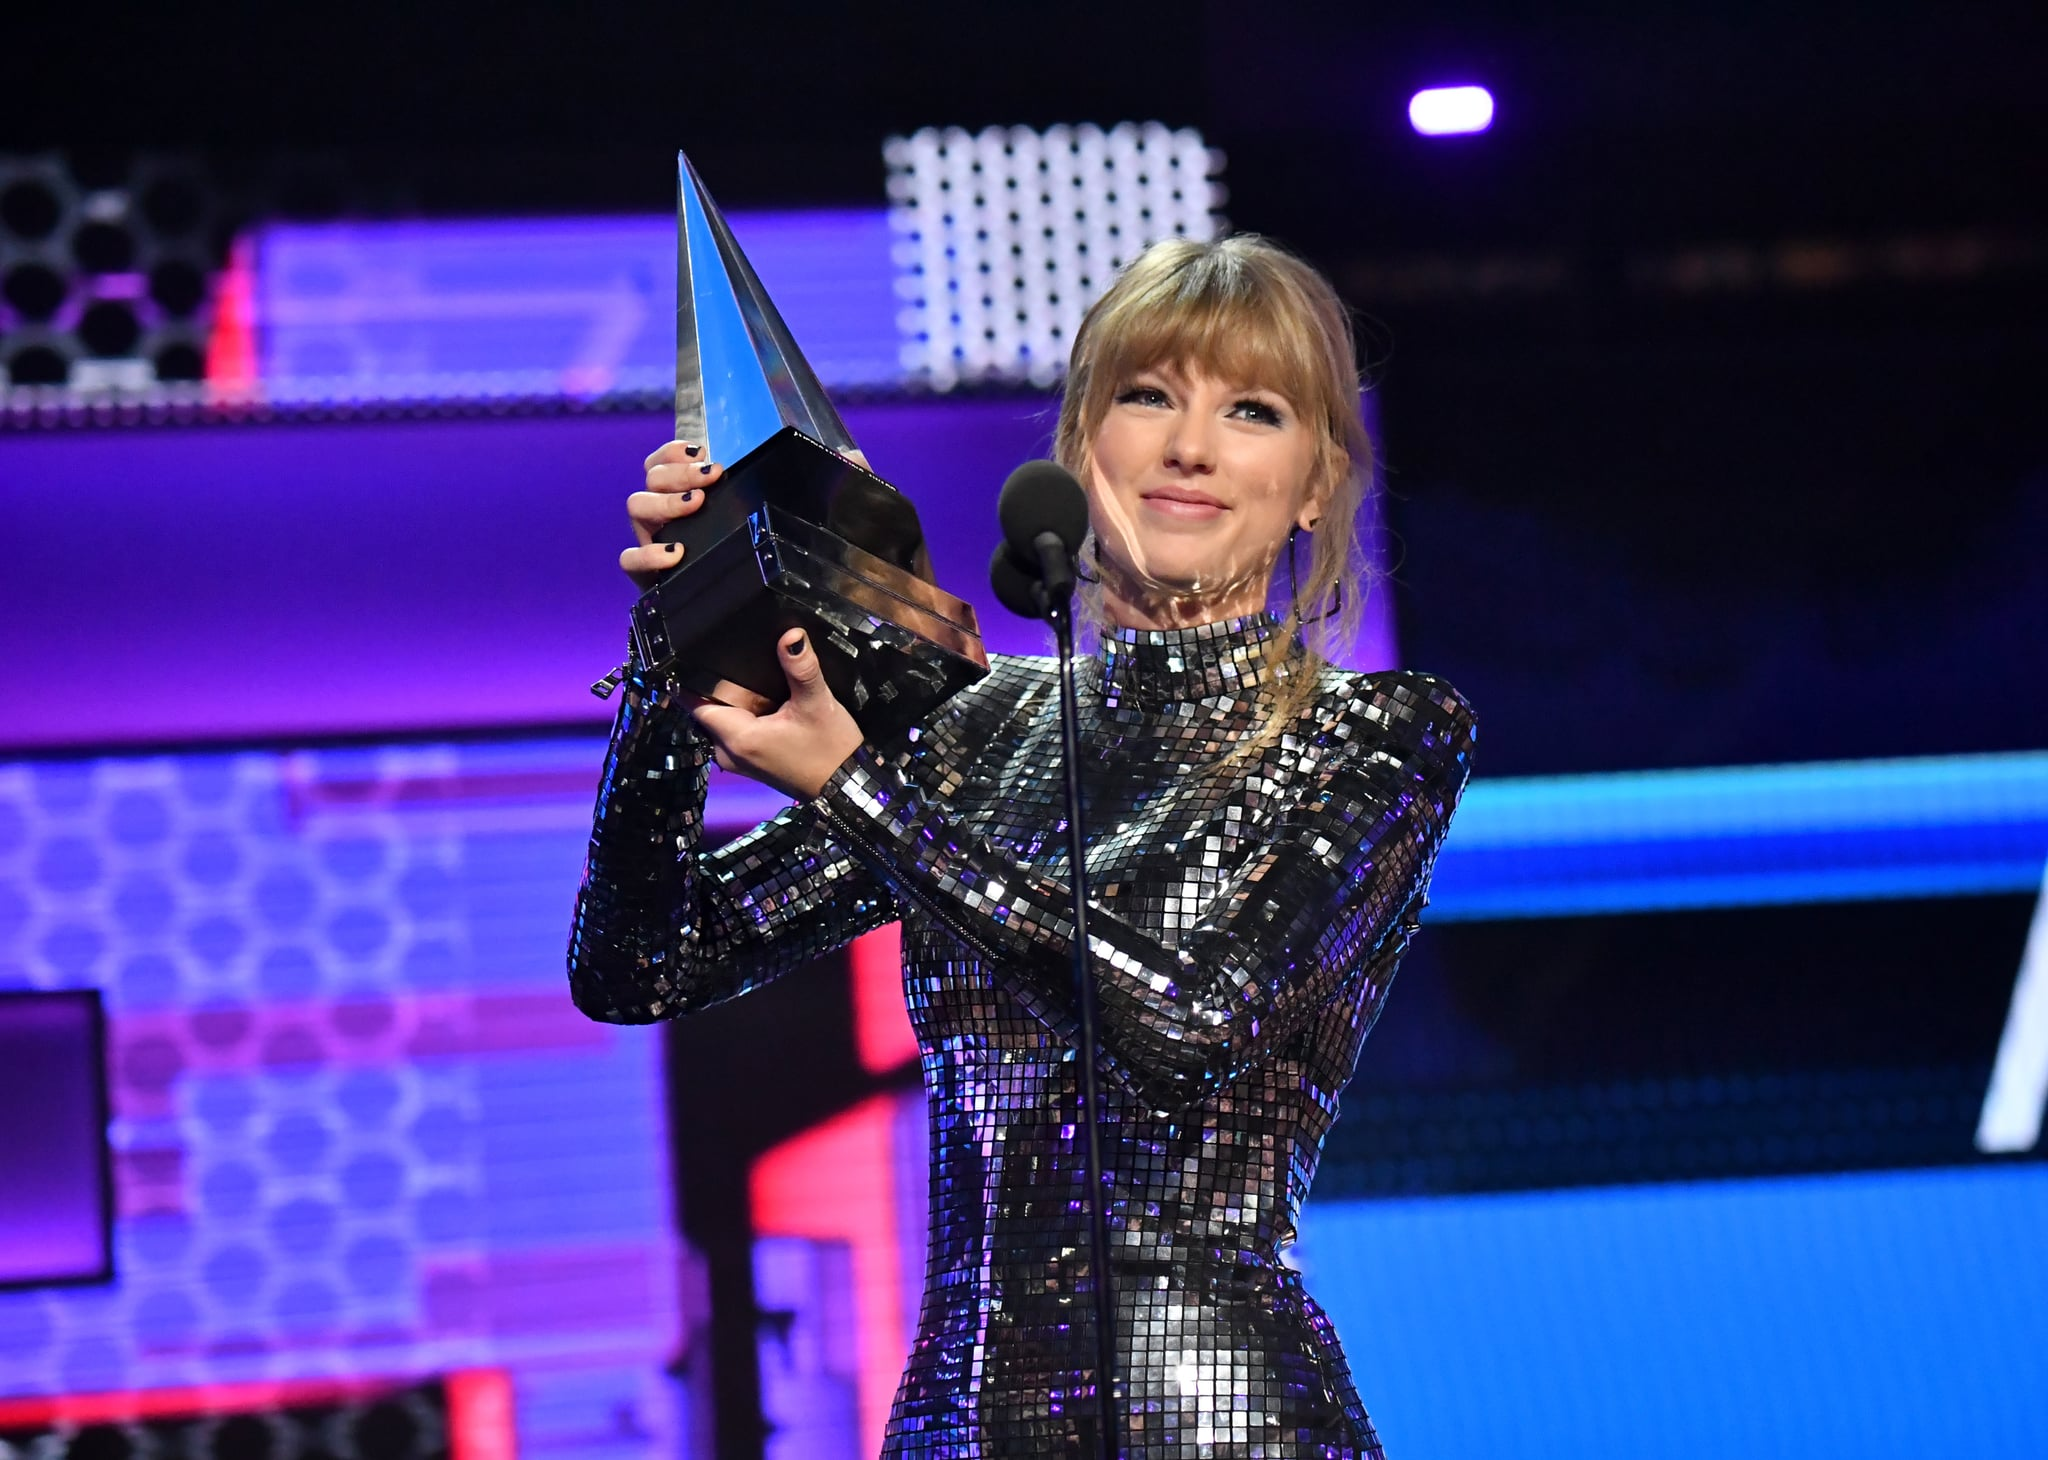 LOS ANGELES, CA - OCTOBER 09:  Taylor Swift accepts Artist of the Year onstage during the 2018 American Music Awards at Microsoft Theatre on October 9, 2018 in Los Angeles, California.  (Photo by Jeff Kravitz/AMA2018/FilmMagic For dcp ,)